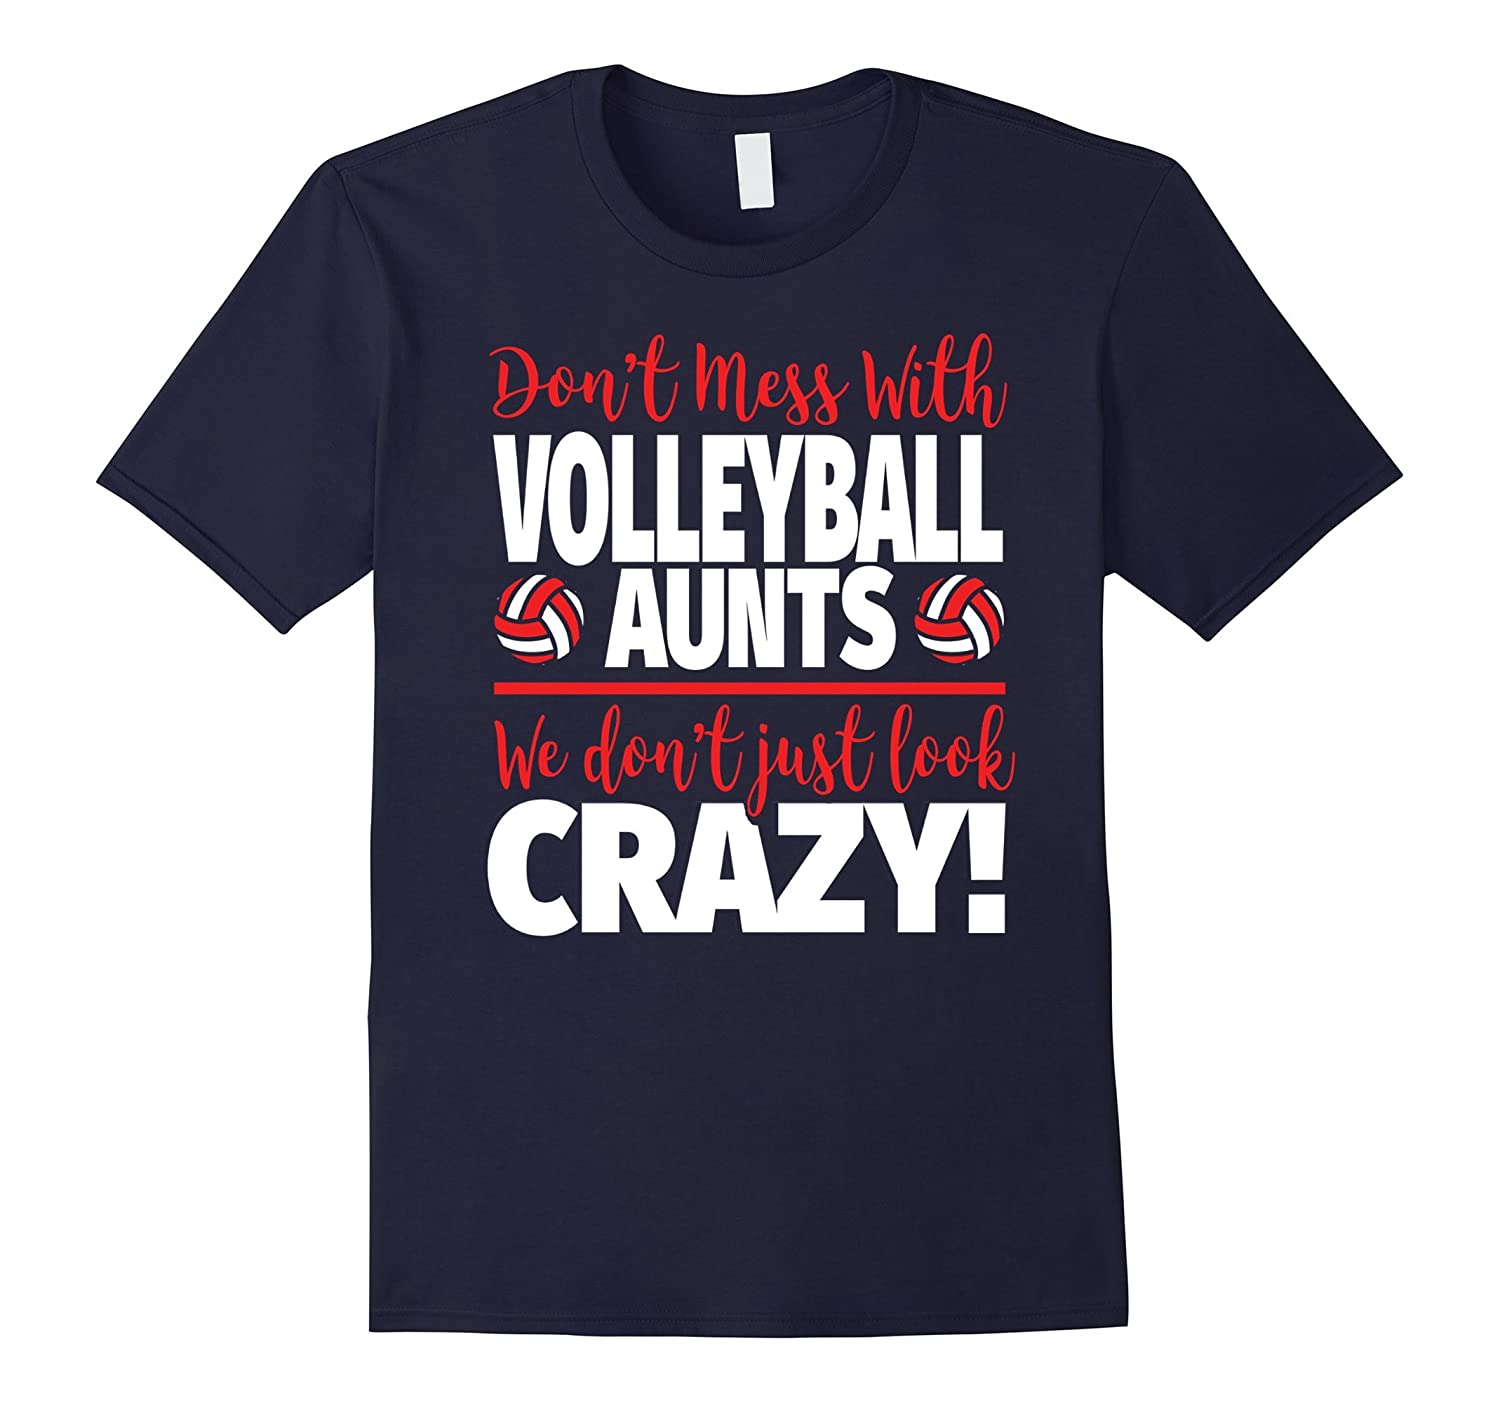 Crazy Volleyball Aunt T-Shirt - We Don't Just Look Crazy-Art